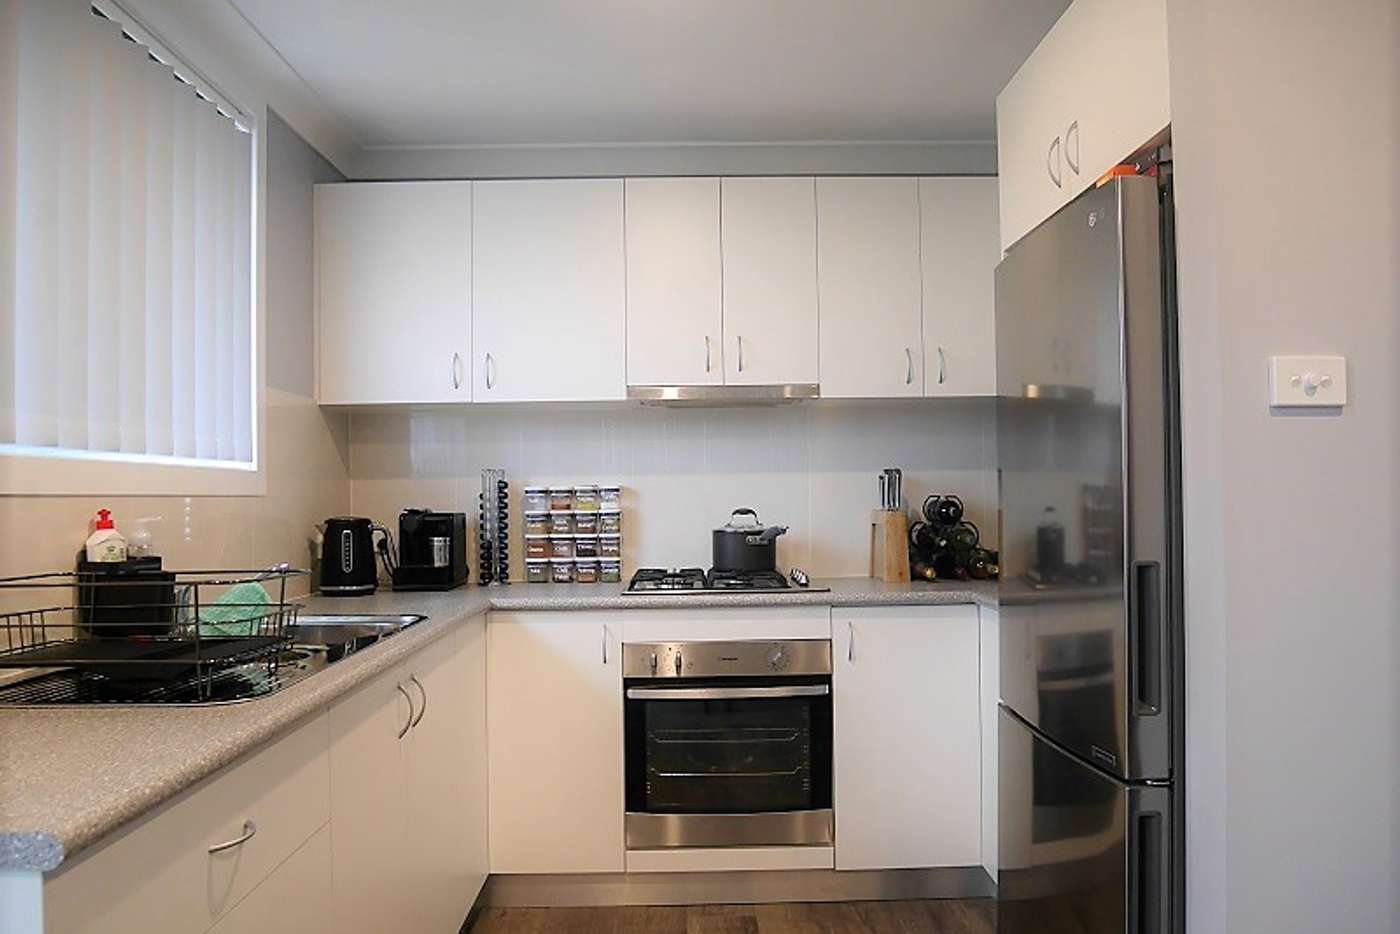 Main view of Homely villa listing, 10a Hay Close, St Clair NSW 2759